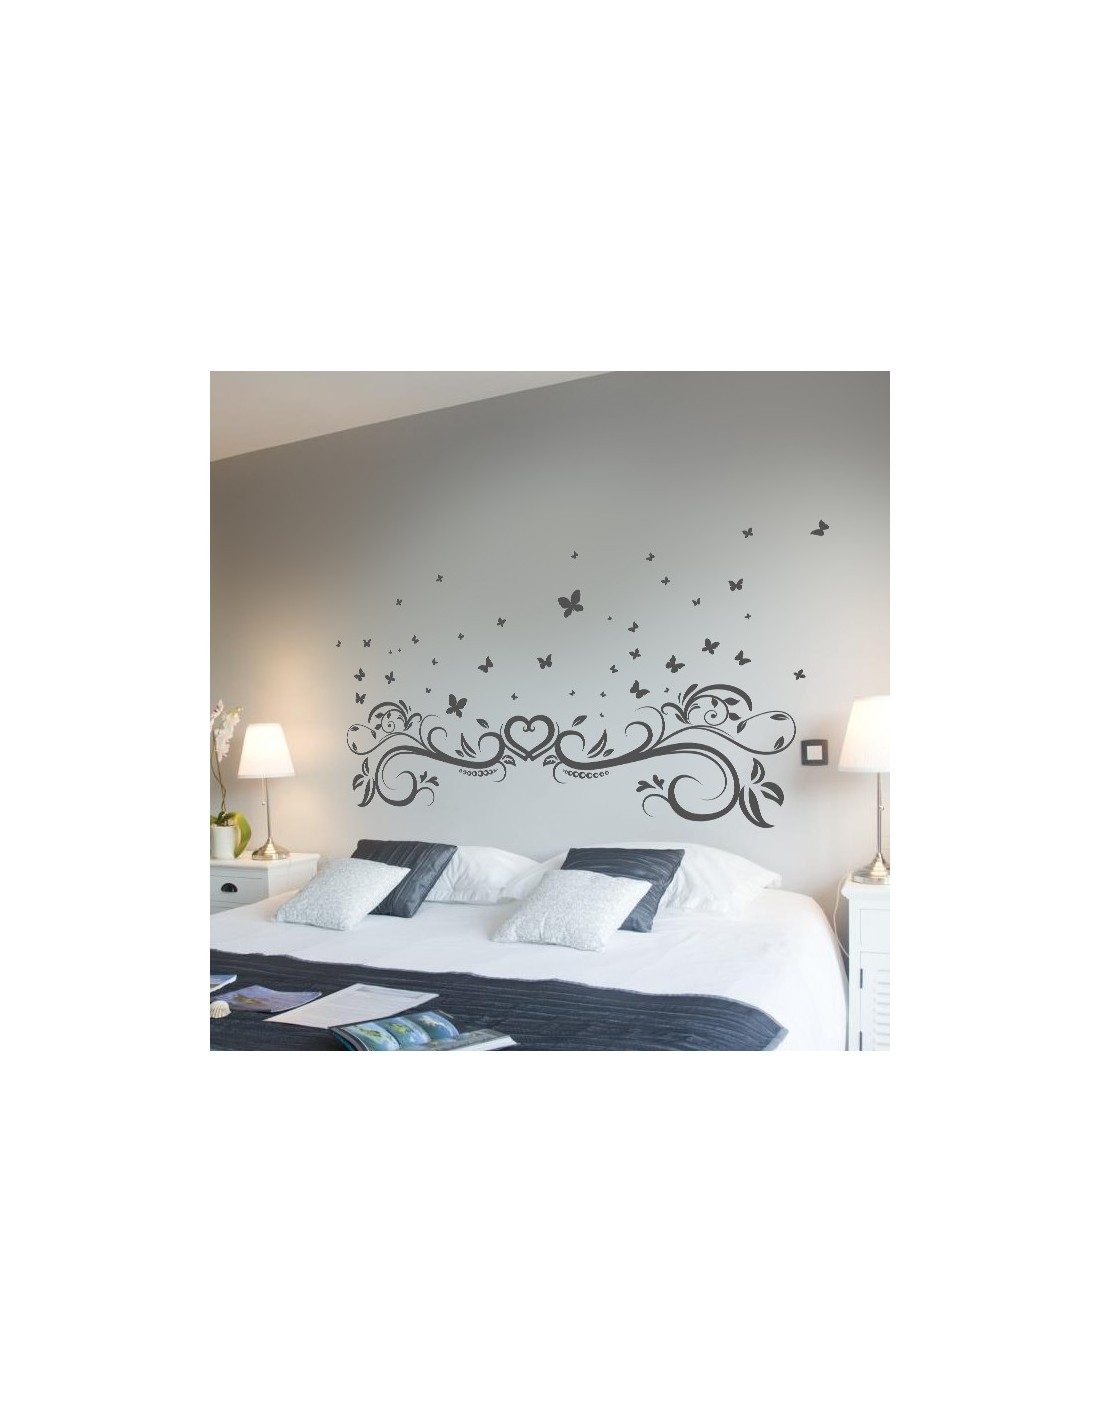 stickers de d coration t te de lit stickers muraux chambre. Black Bedroom Furniture Sets. Home Design Ideas